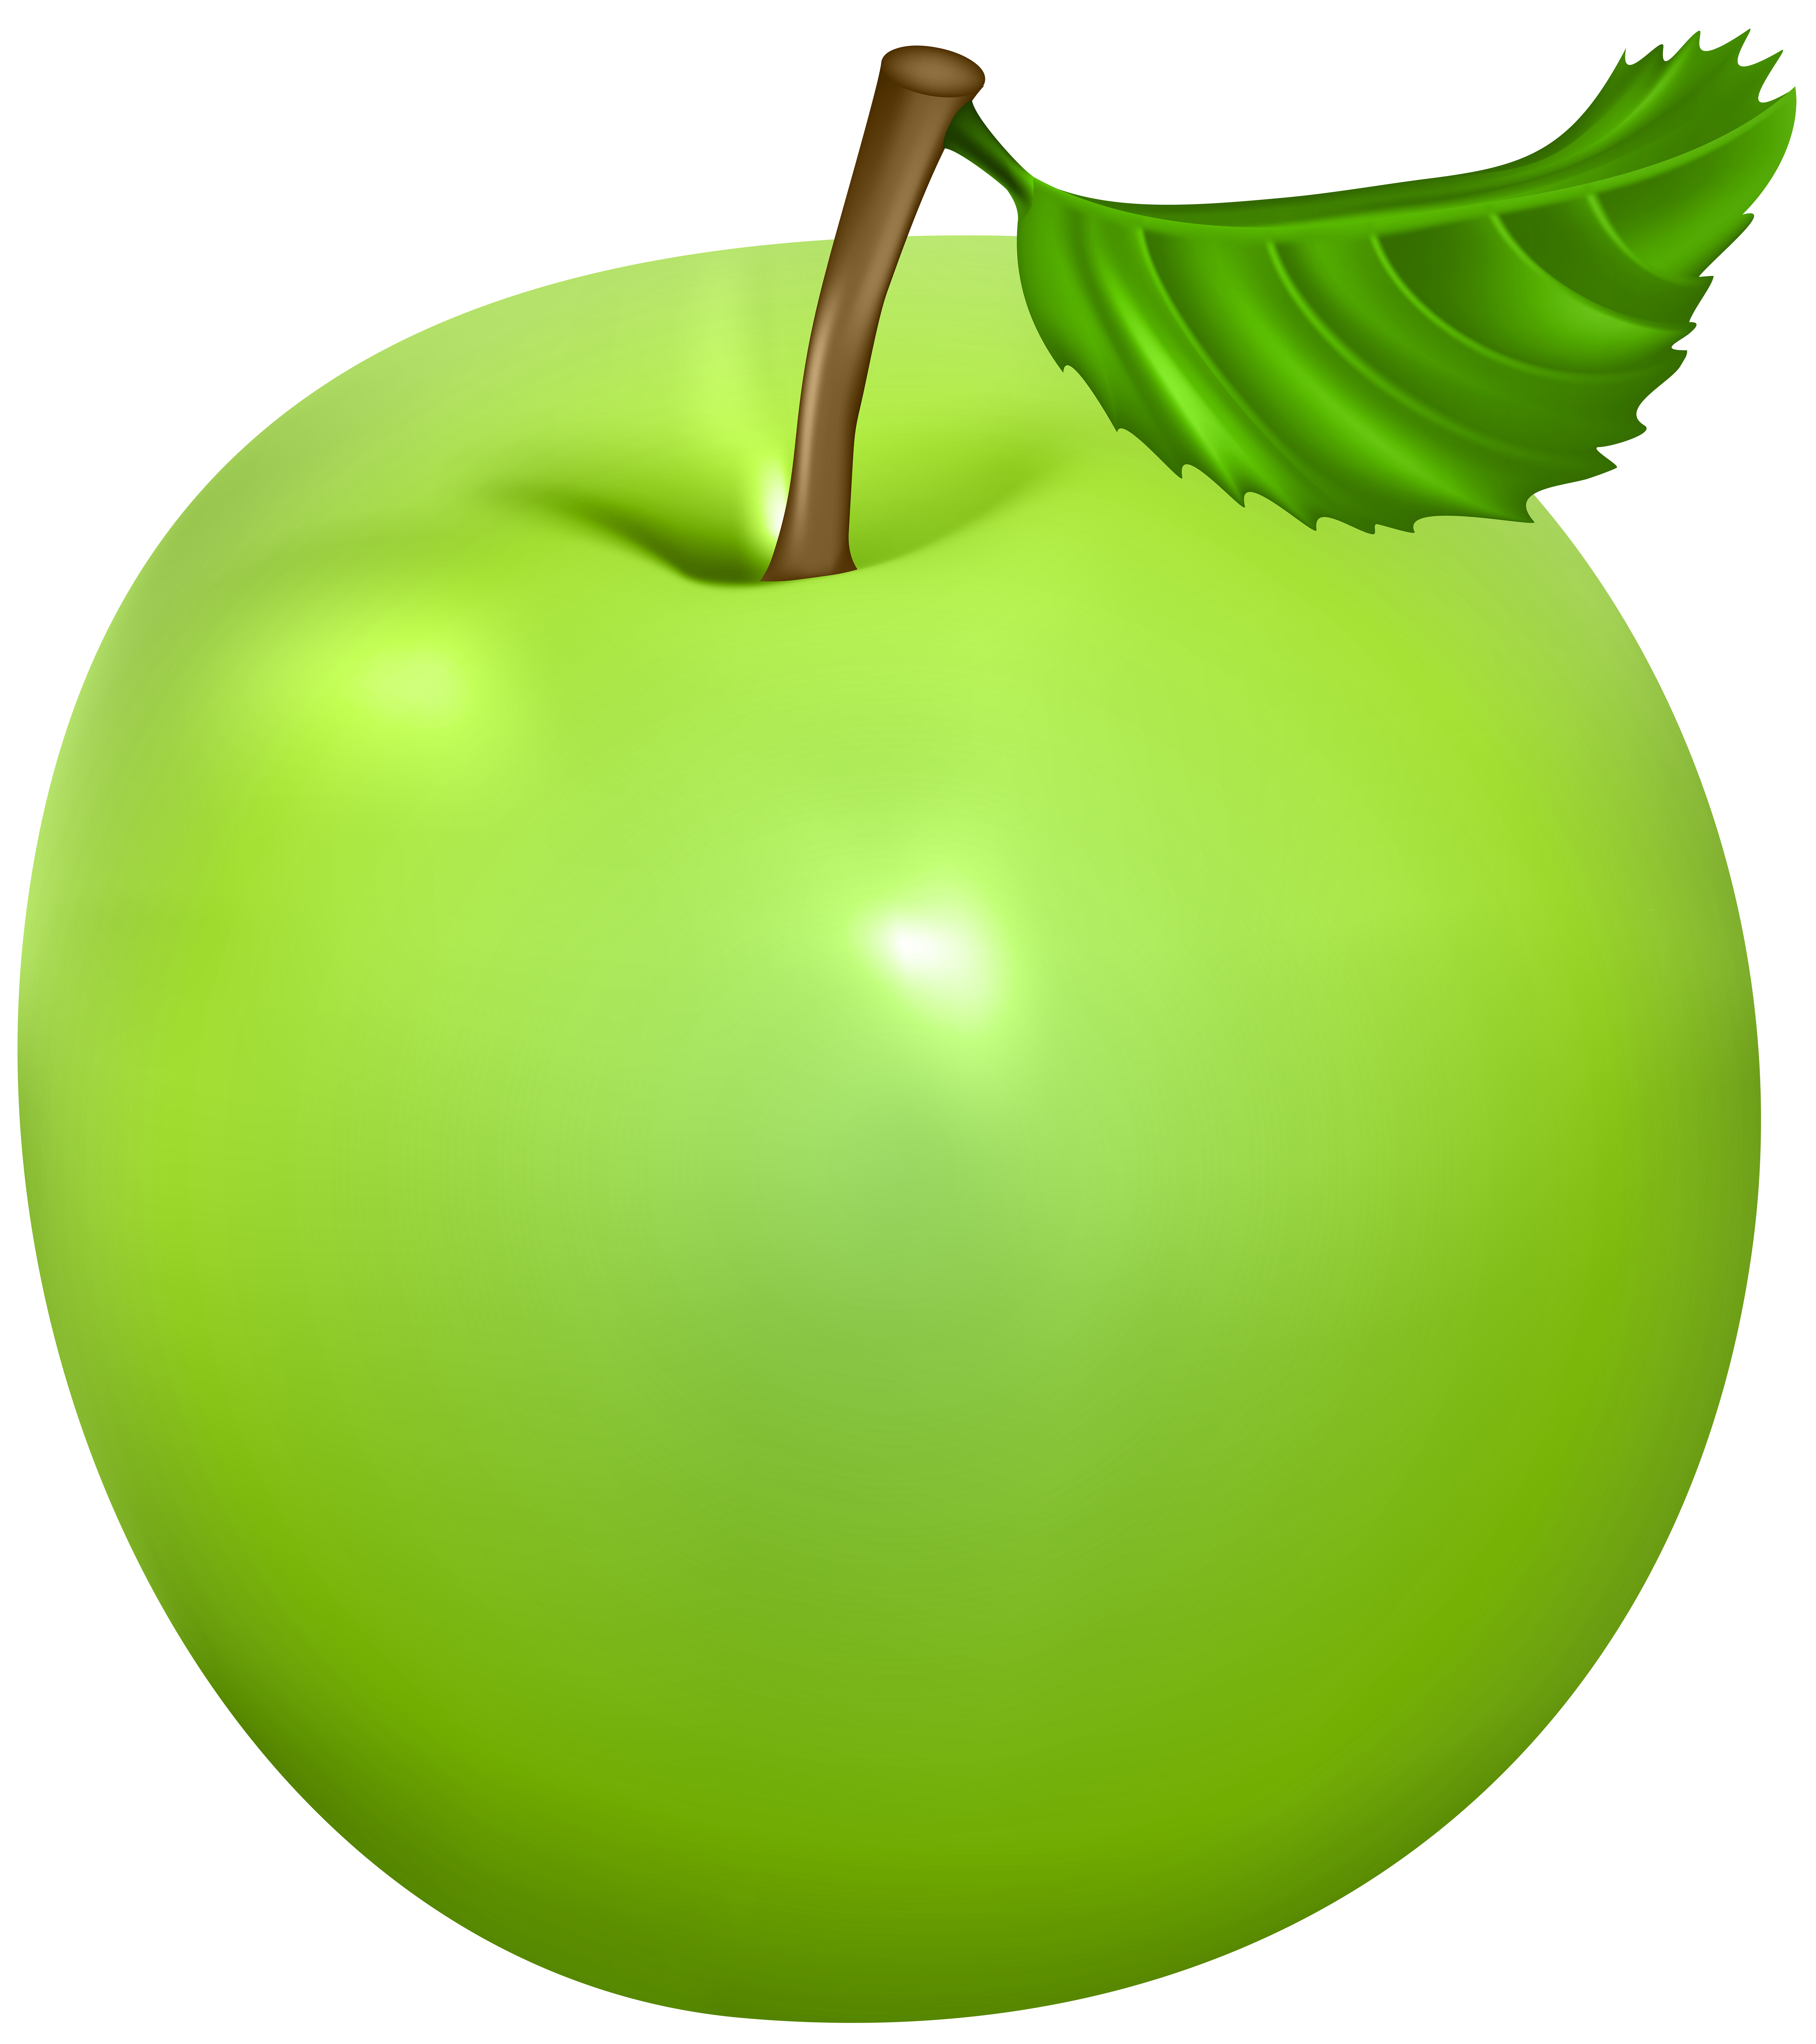 Green apple clipart png jpg black and white library Green Apple PNG Clip Art Image - Best WEB Clipart jpg black and white library